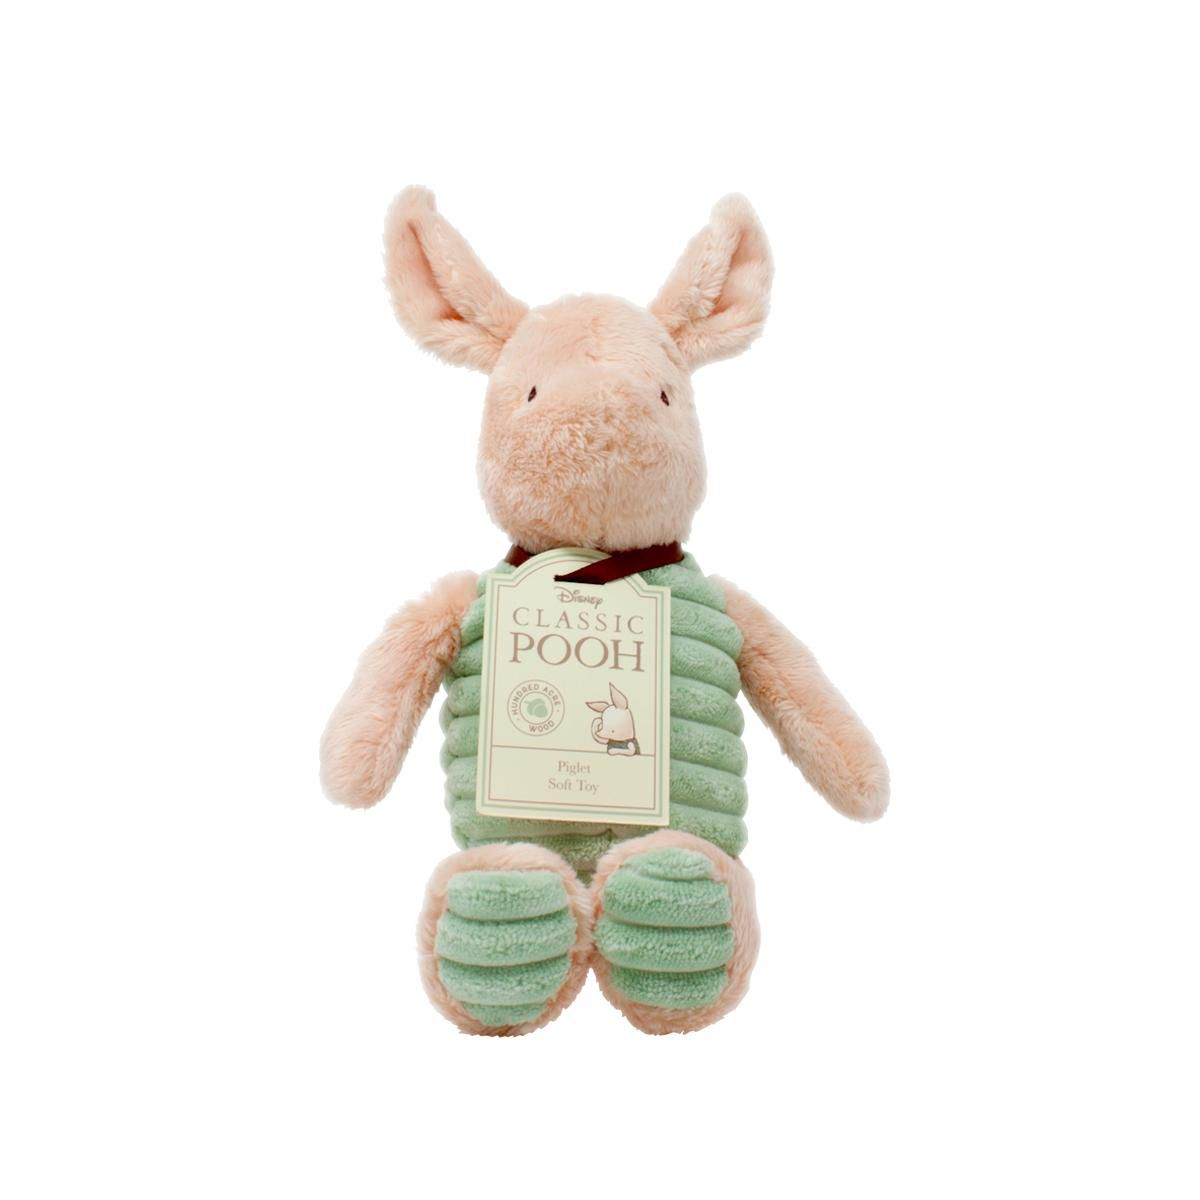 Hundred Acre Wood Piglet Soft Toy by Rainbow Designs DN1473